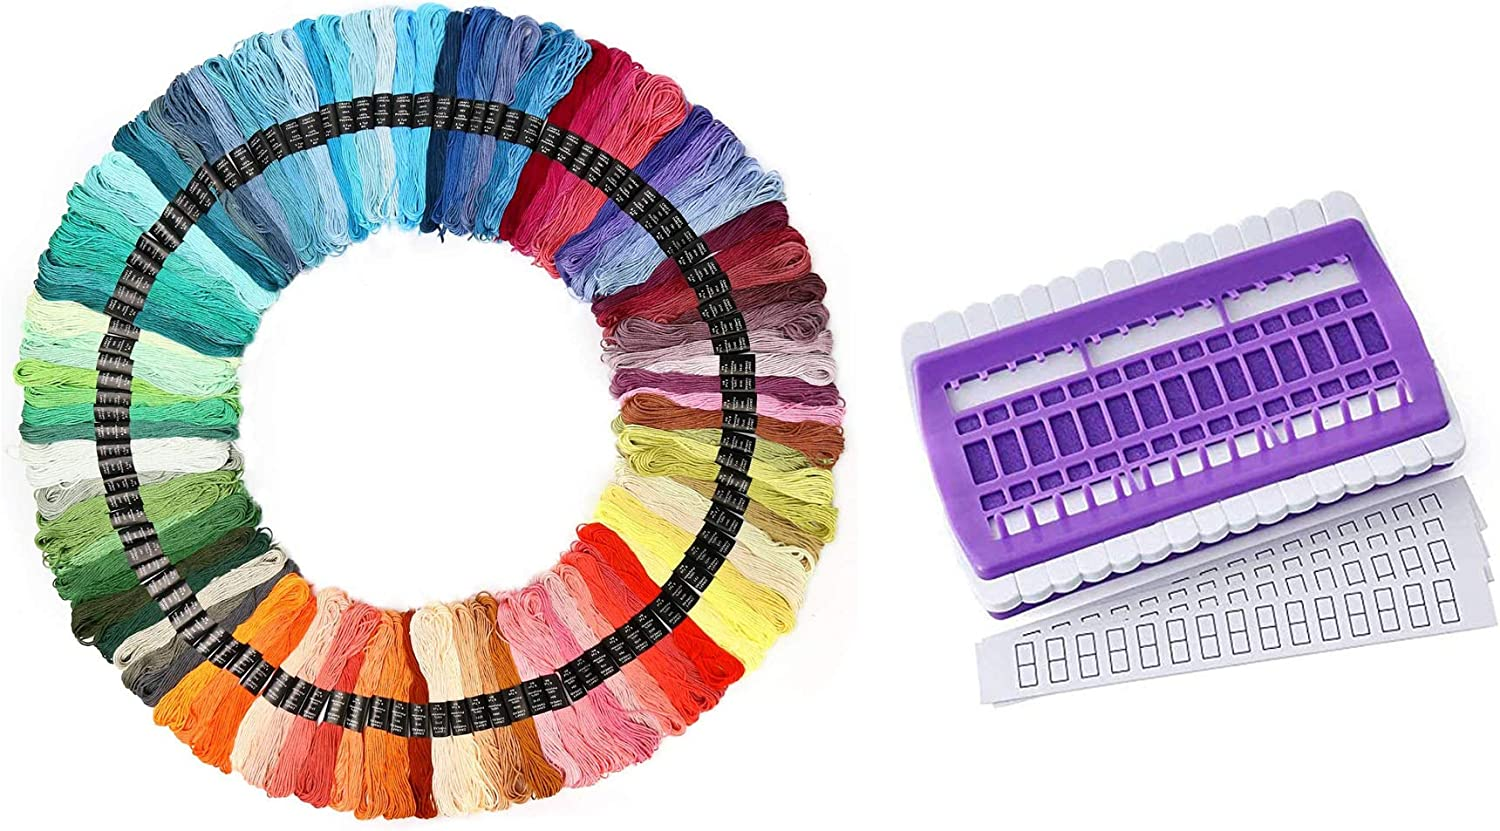 Maydear Cross Stitch Kit 6 Pieces Cotton Aida Fabric 6 Pieces Hoop Rings 100 Skeins Polyester Cotton Embroidery Thread